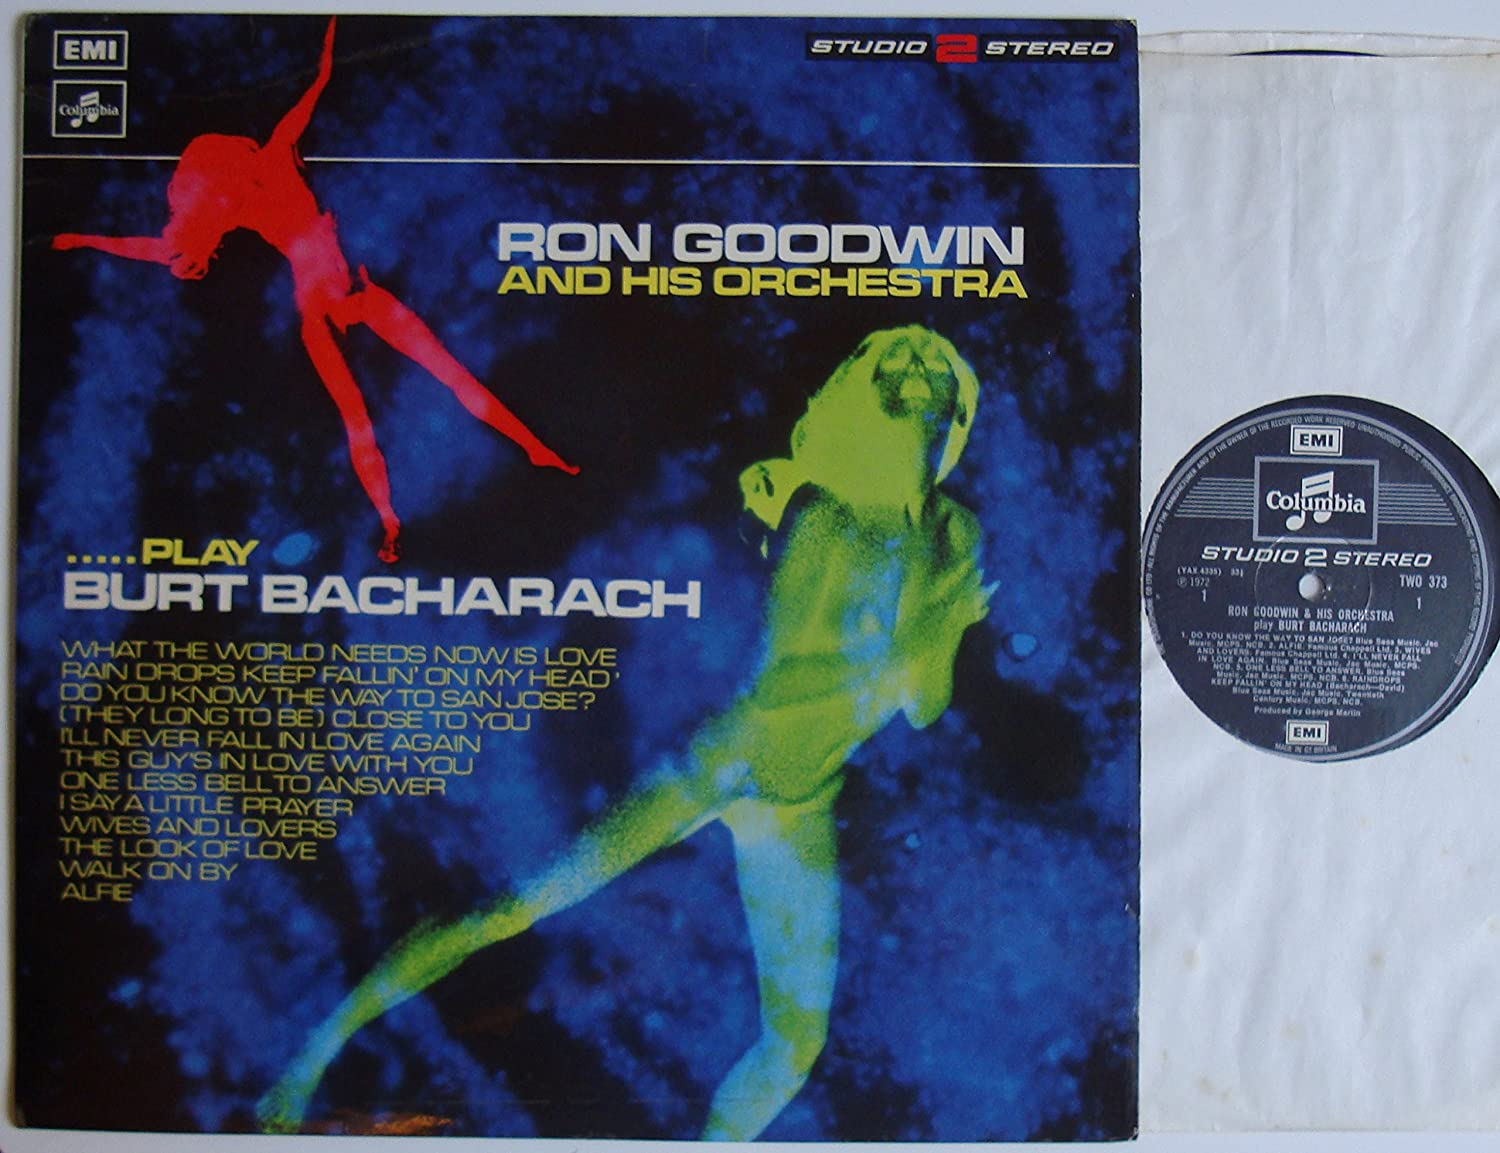 Ron Goodwin And His Orchestra - Play Burt Bacharach - 12